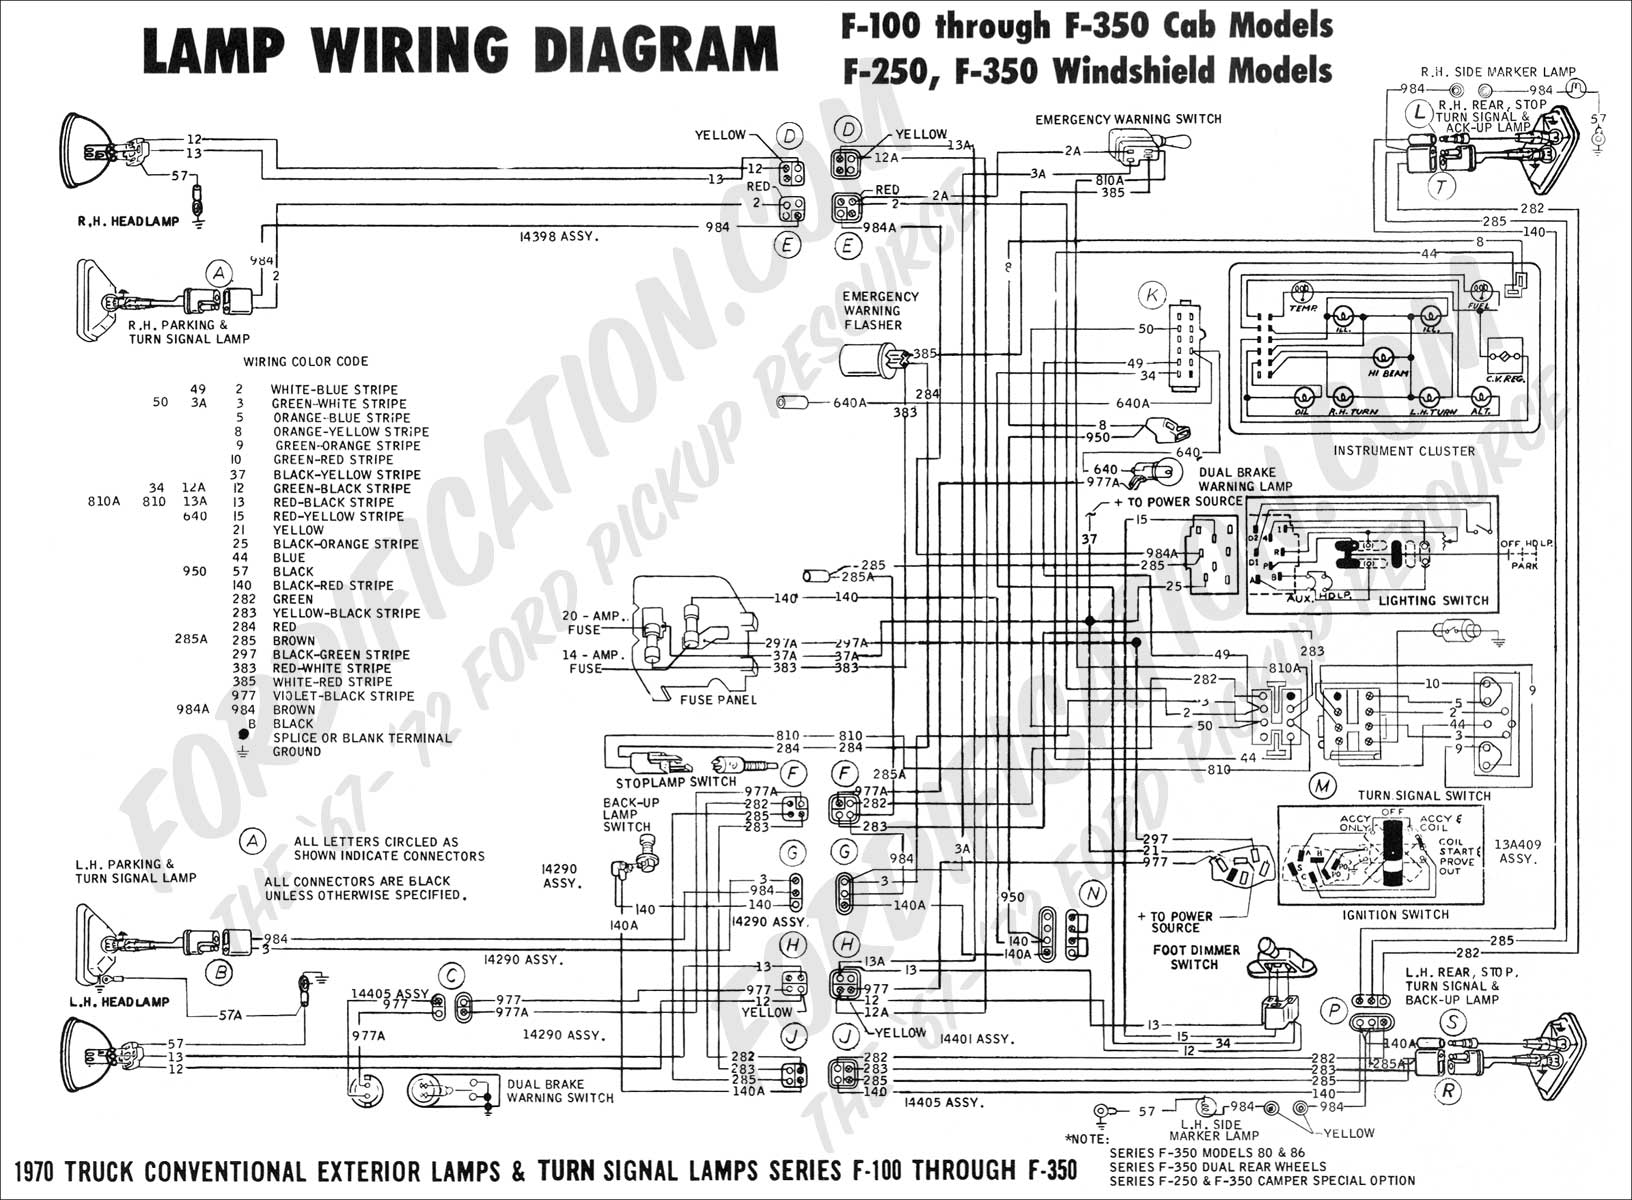 1992 Ford L8000 Wiring Diagram